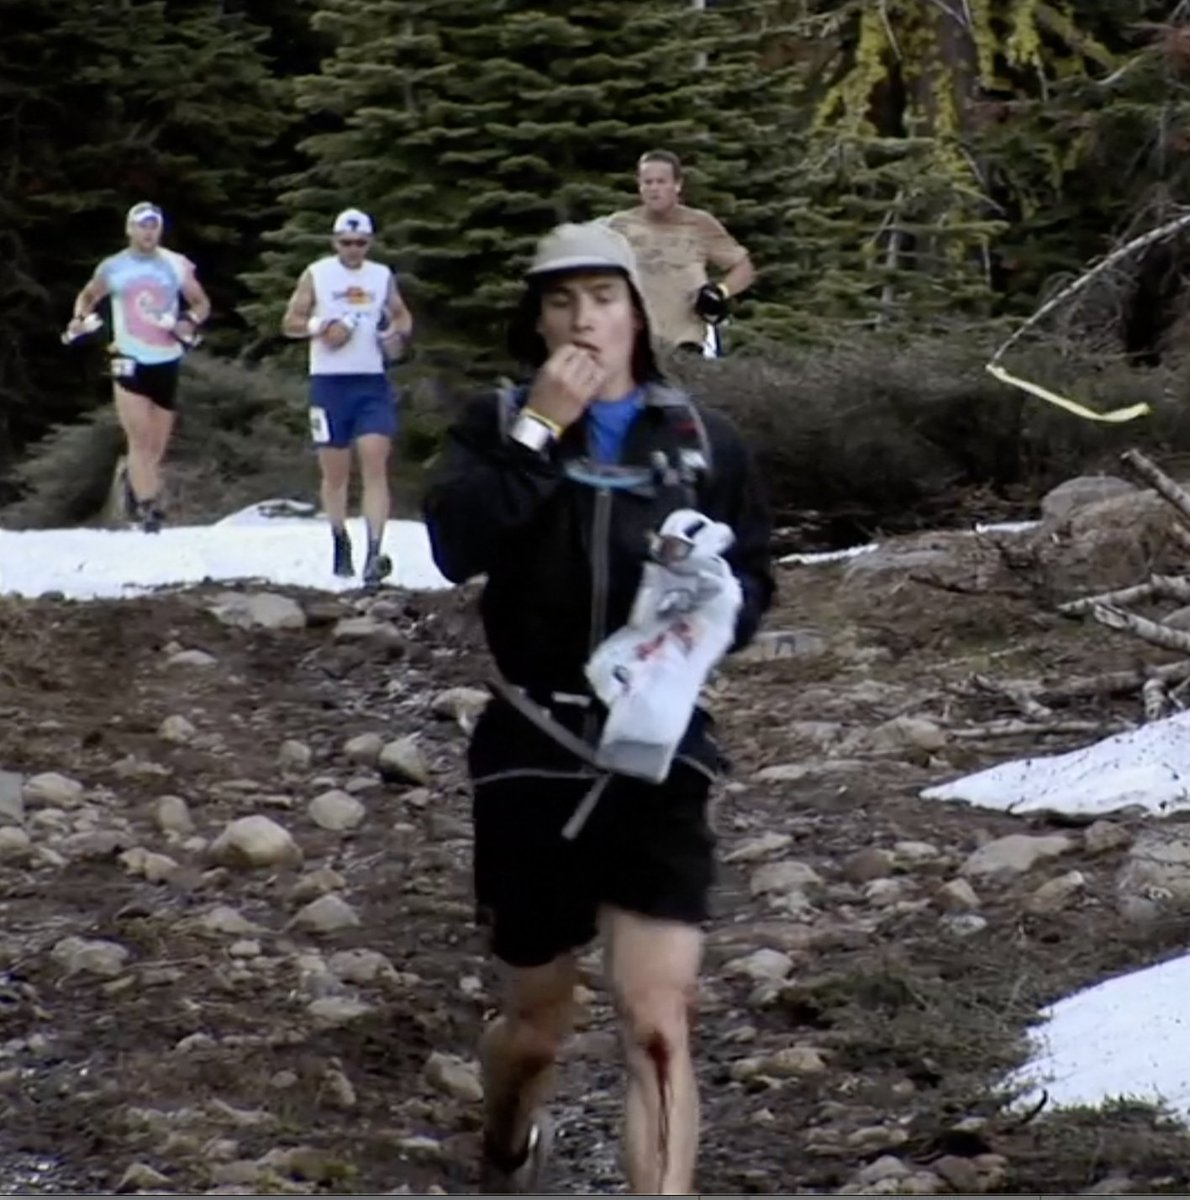 @UltraRunnerPod @00joeuhan I have a screen shot. I also had a top-of-the-line Safeway bag for my camera and food.